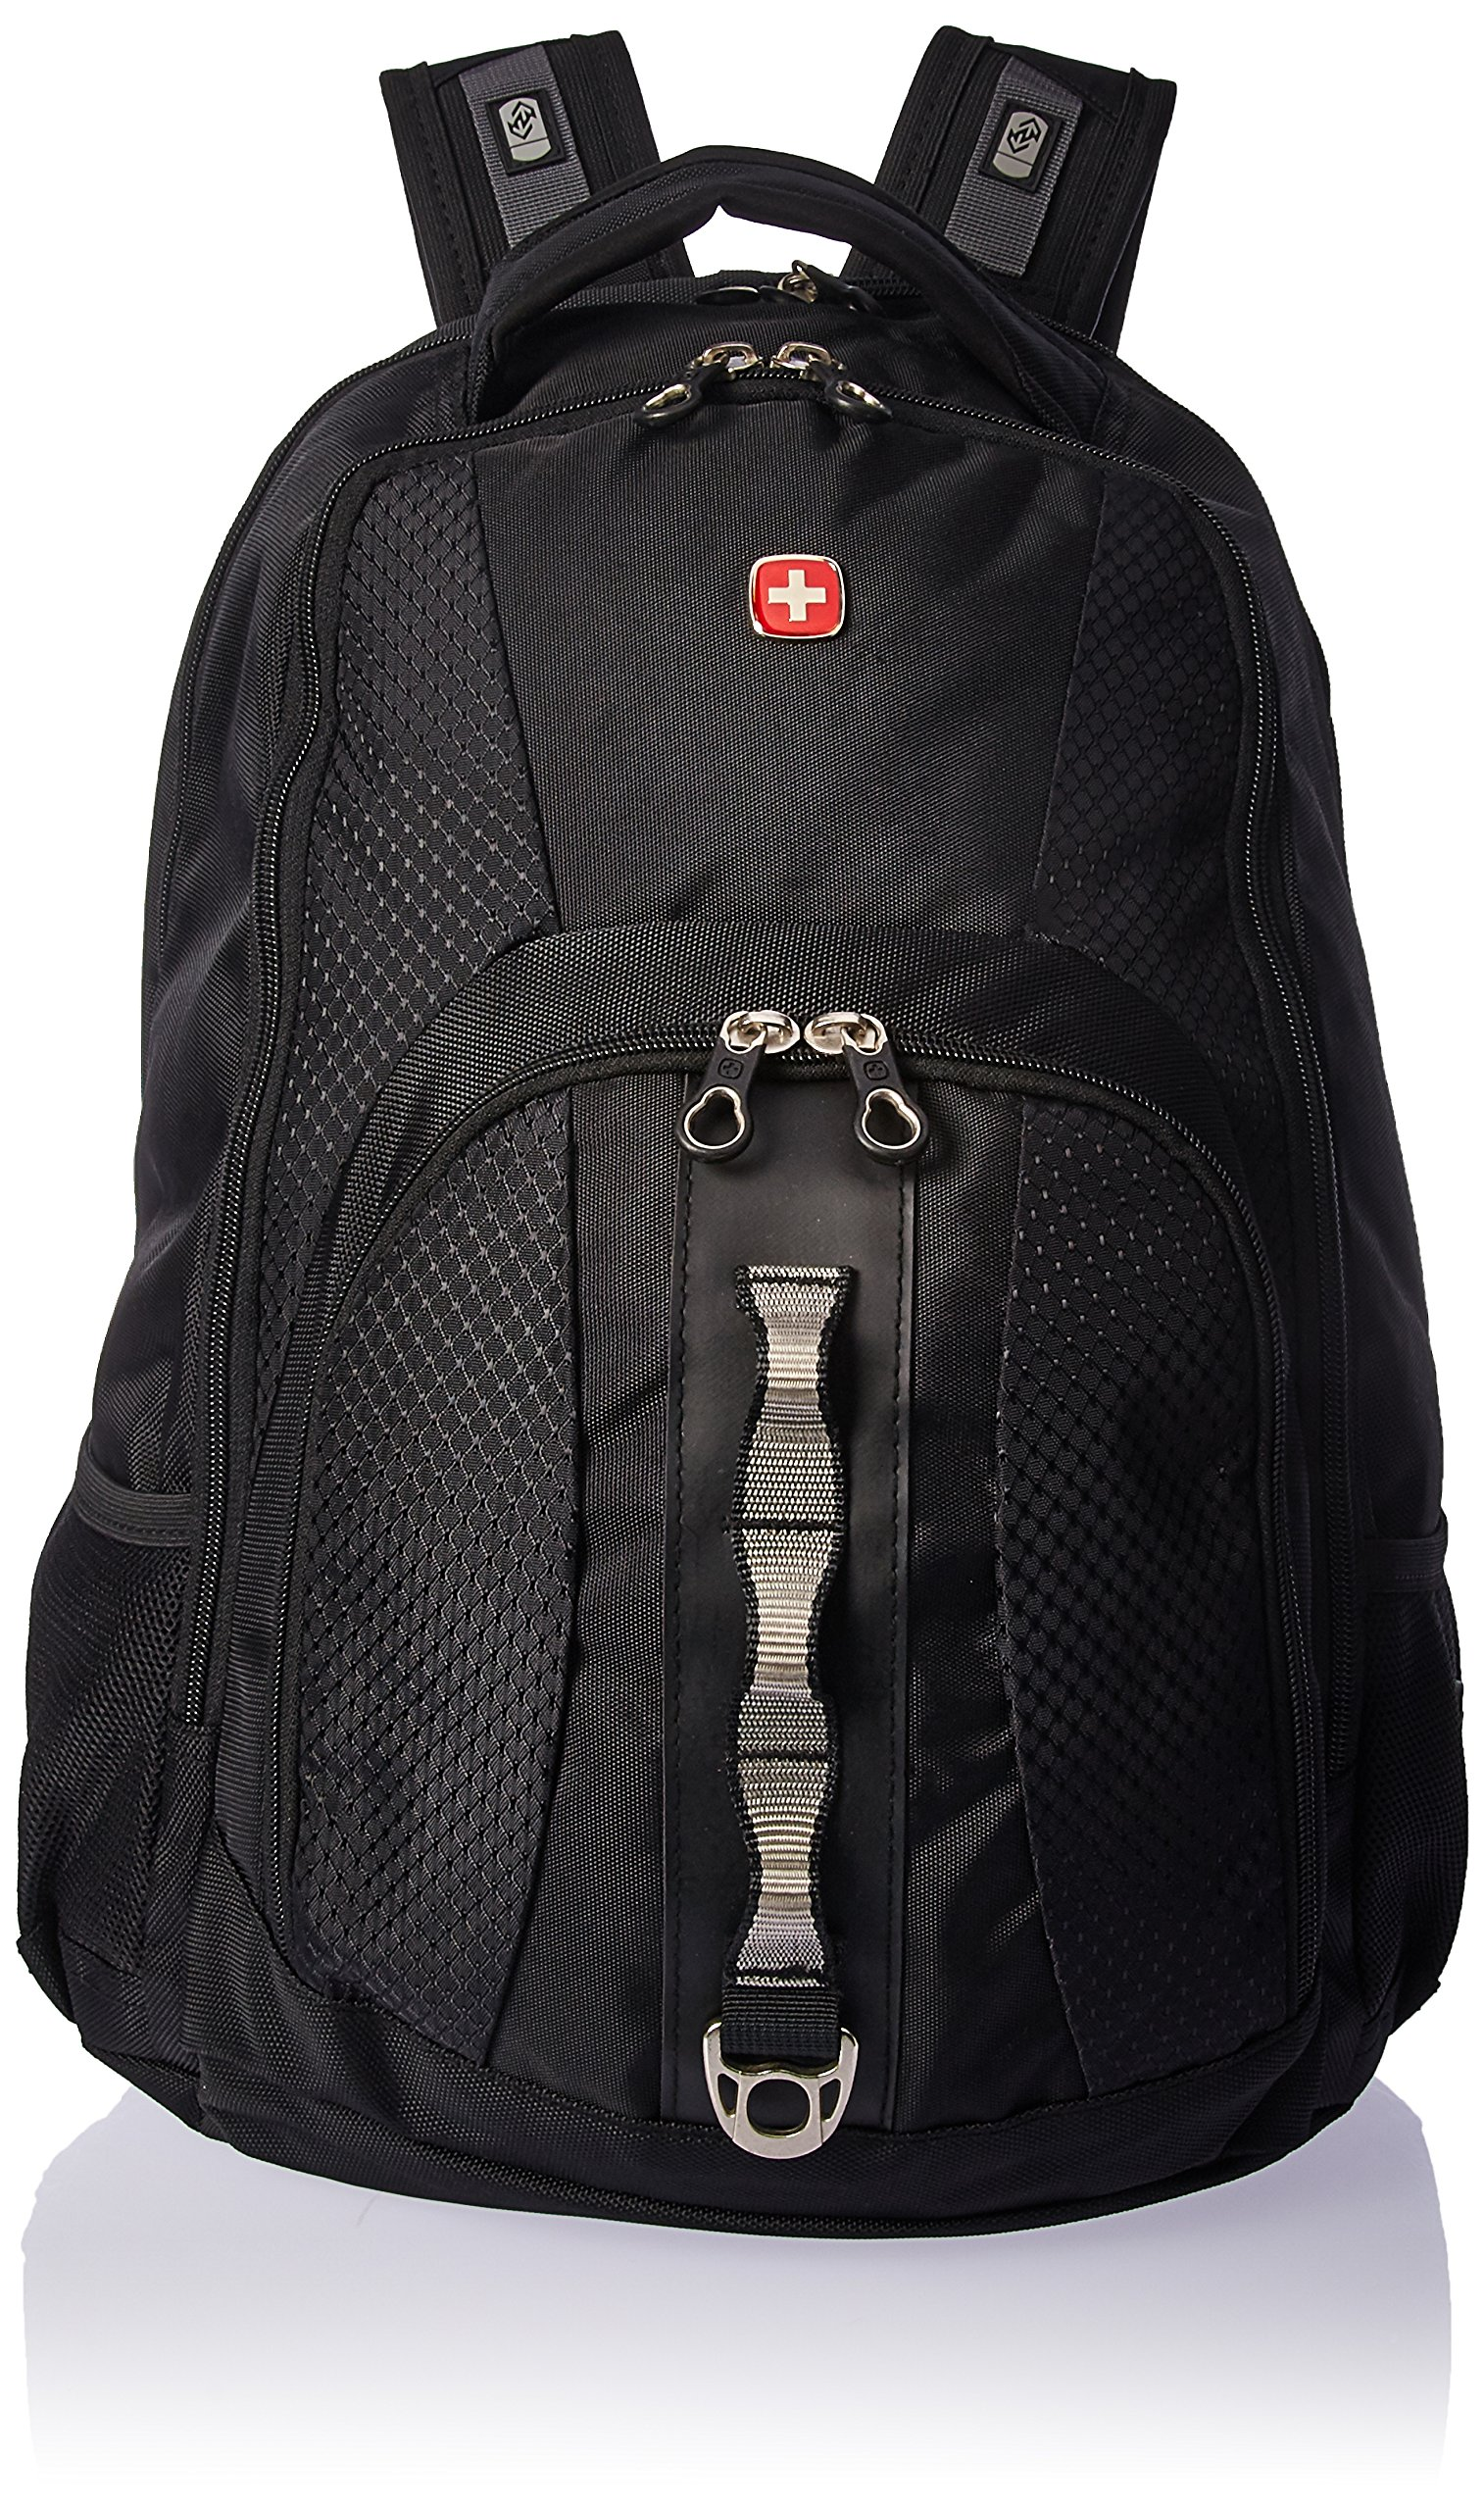 SwissGear Scansmart Backpack, Black by Swiss Gear